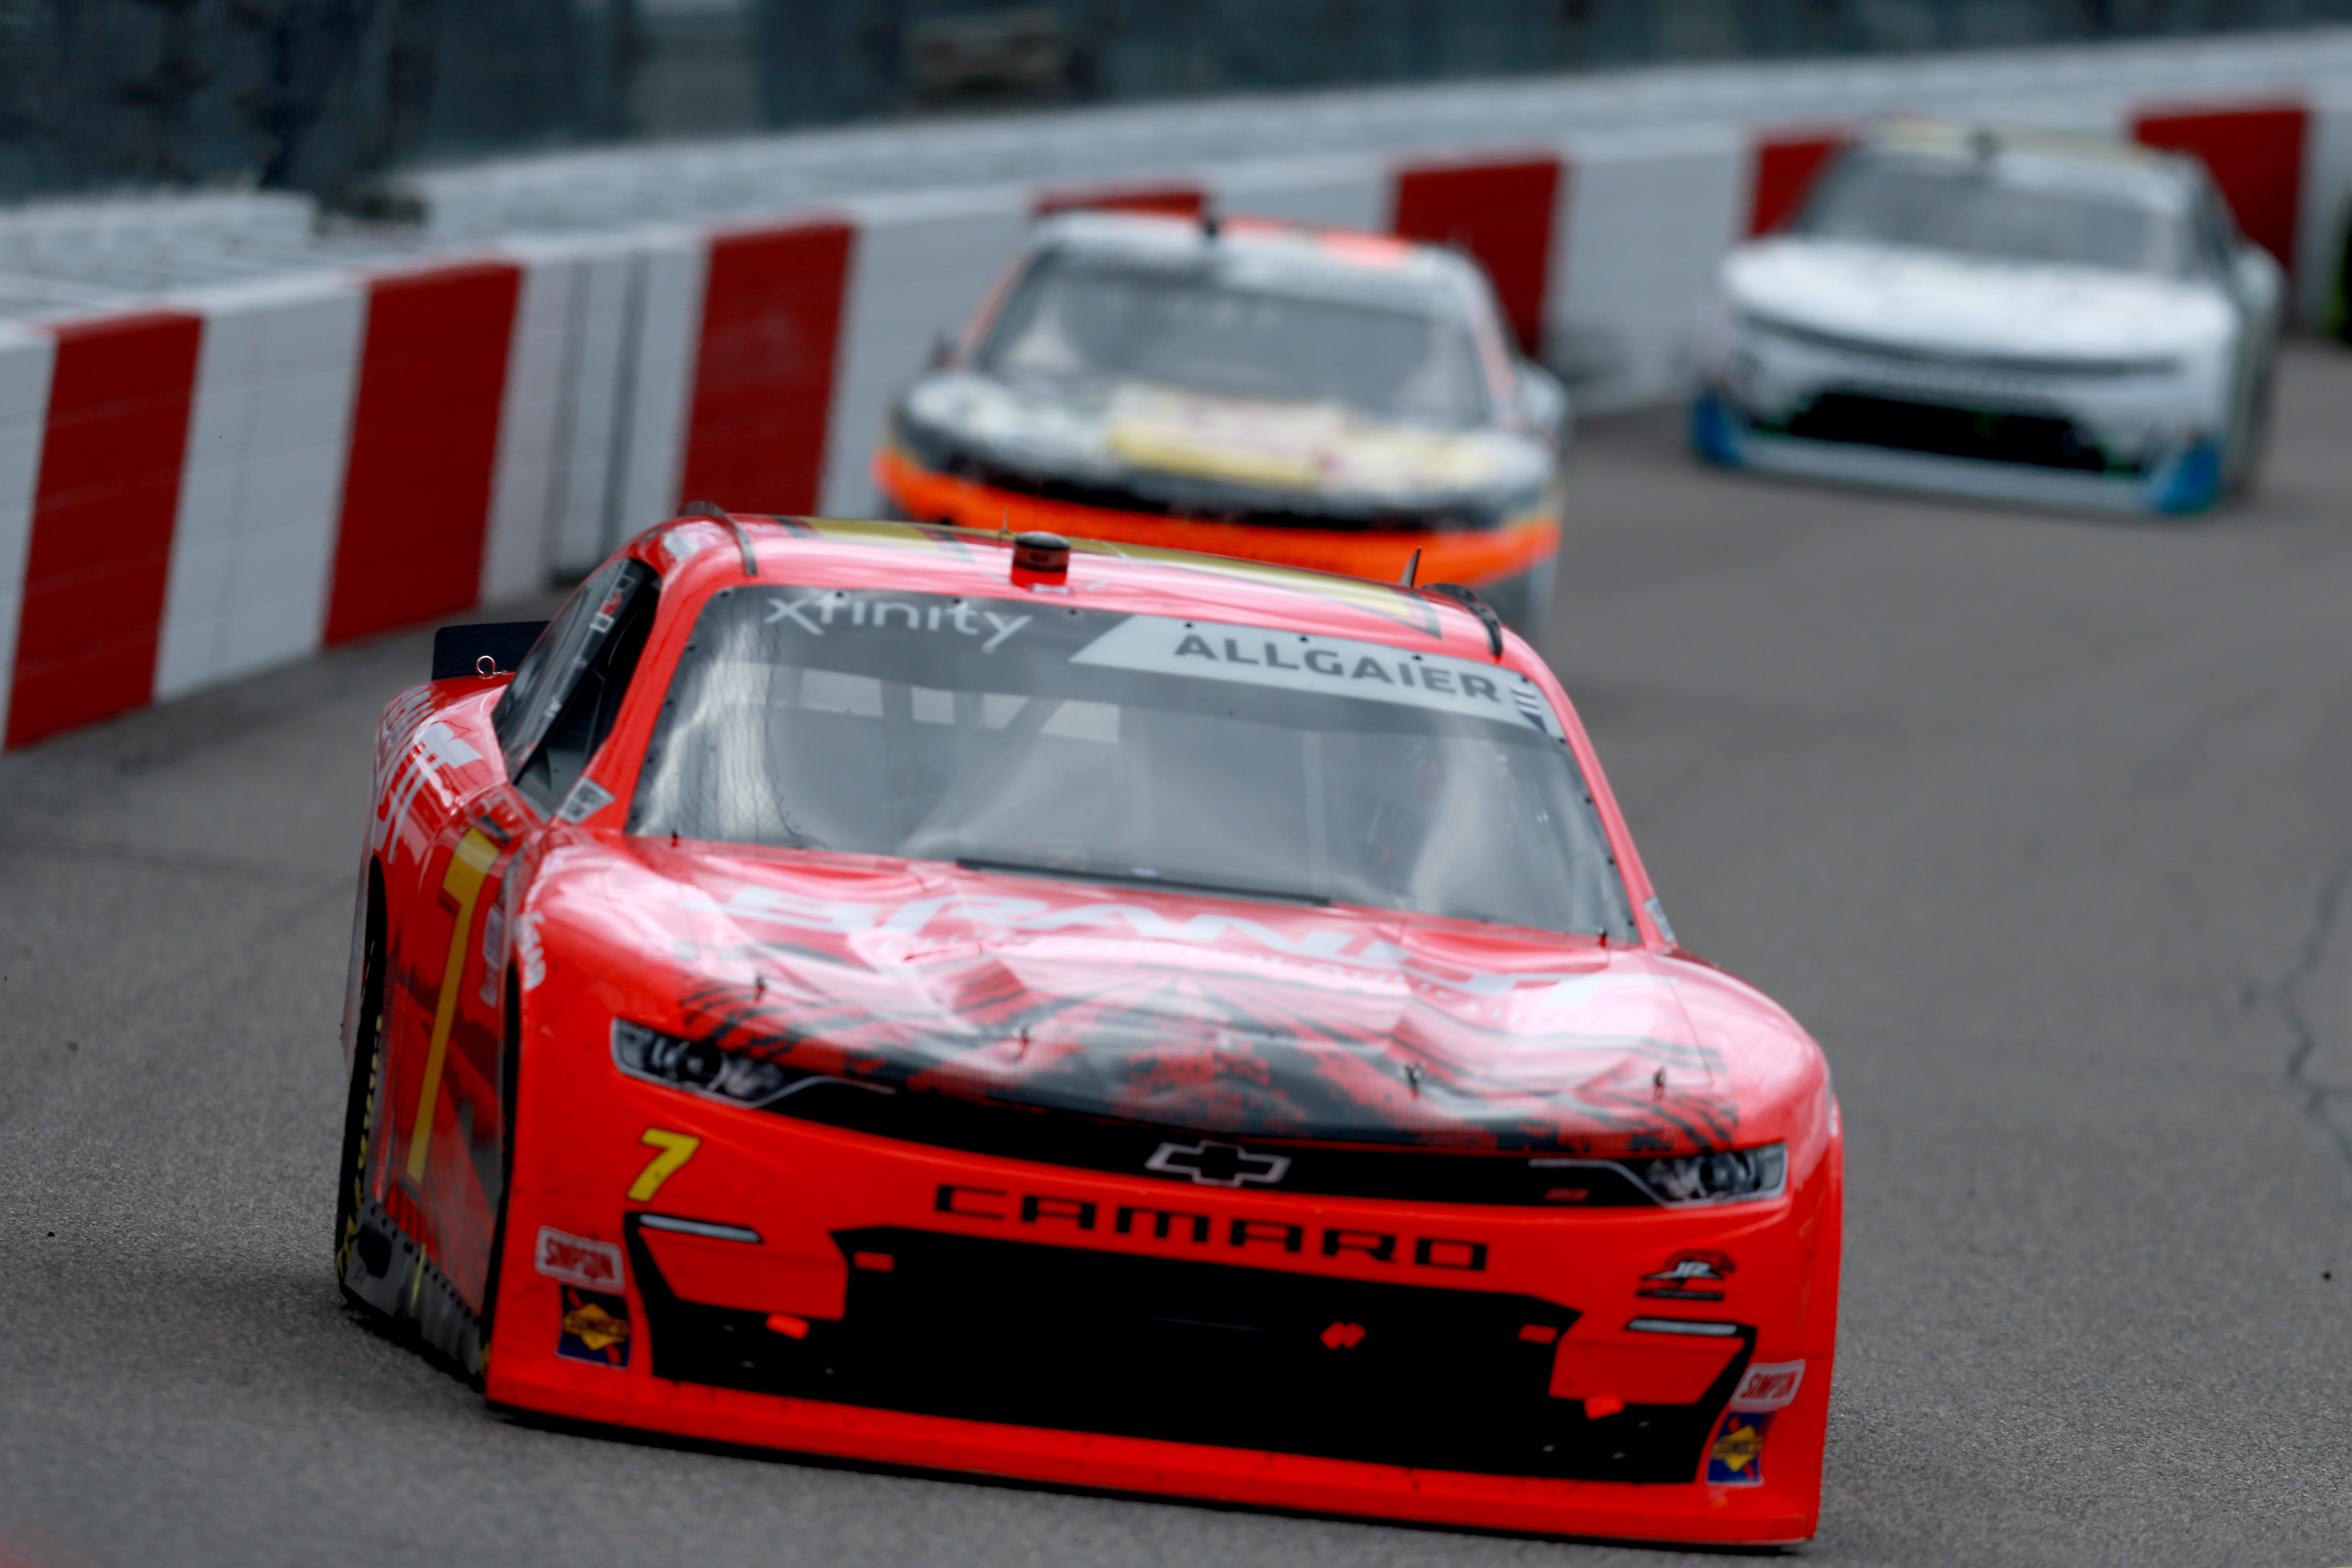 Justin Allgaier, driver of the #7 BRANDT Chevrolet, leads the field during the NASCAR Xfinity Series Virginia is for Racing Lovers 250 at Richmond Raceway on September 12, 2020 in